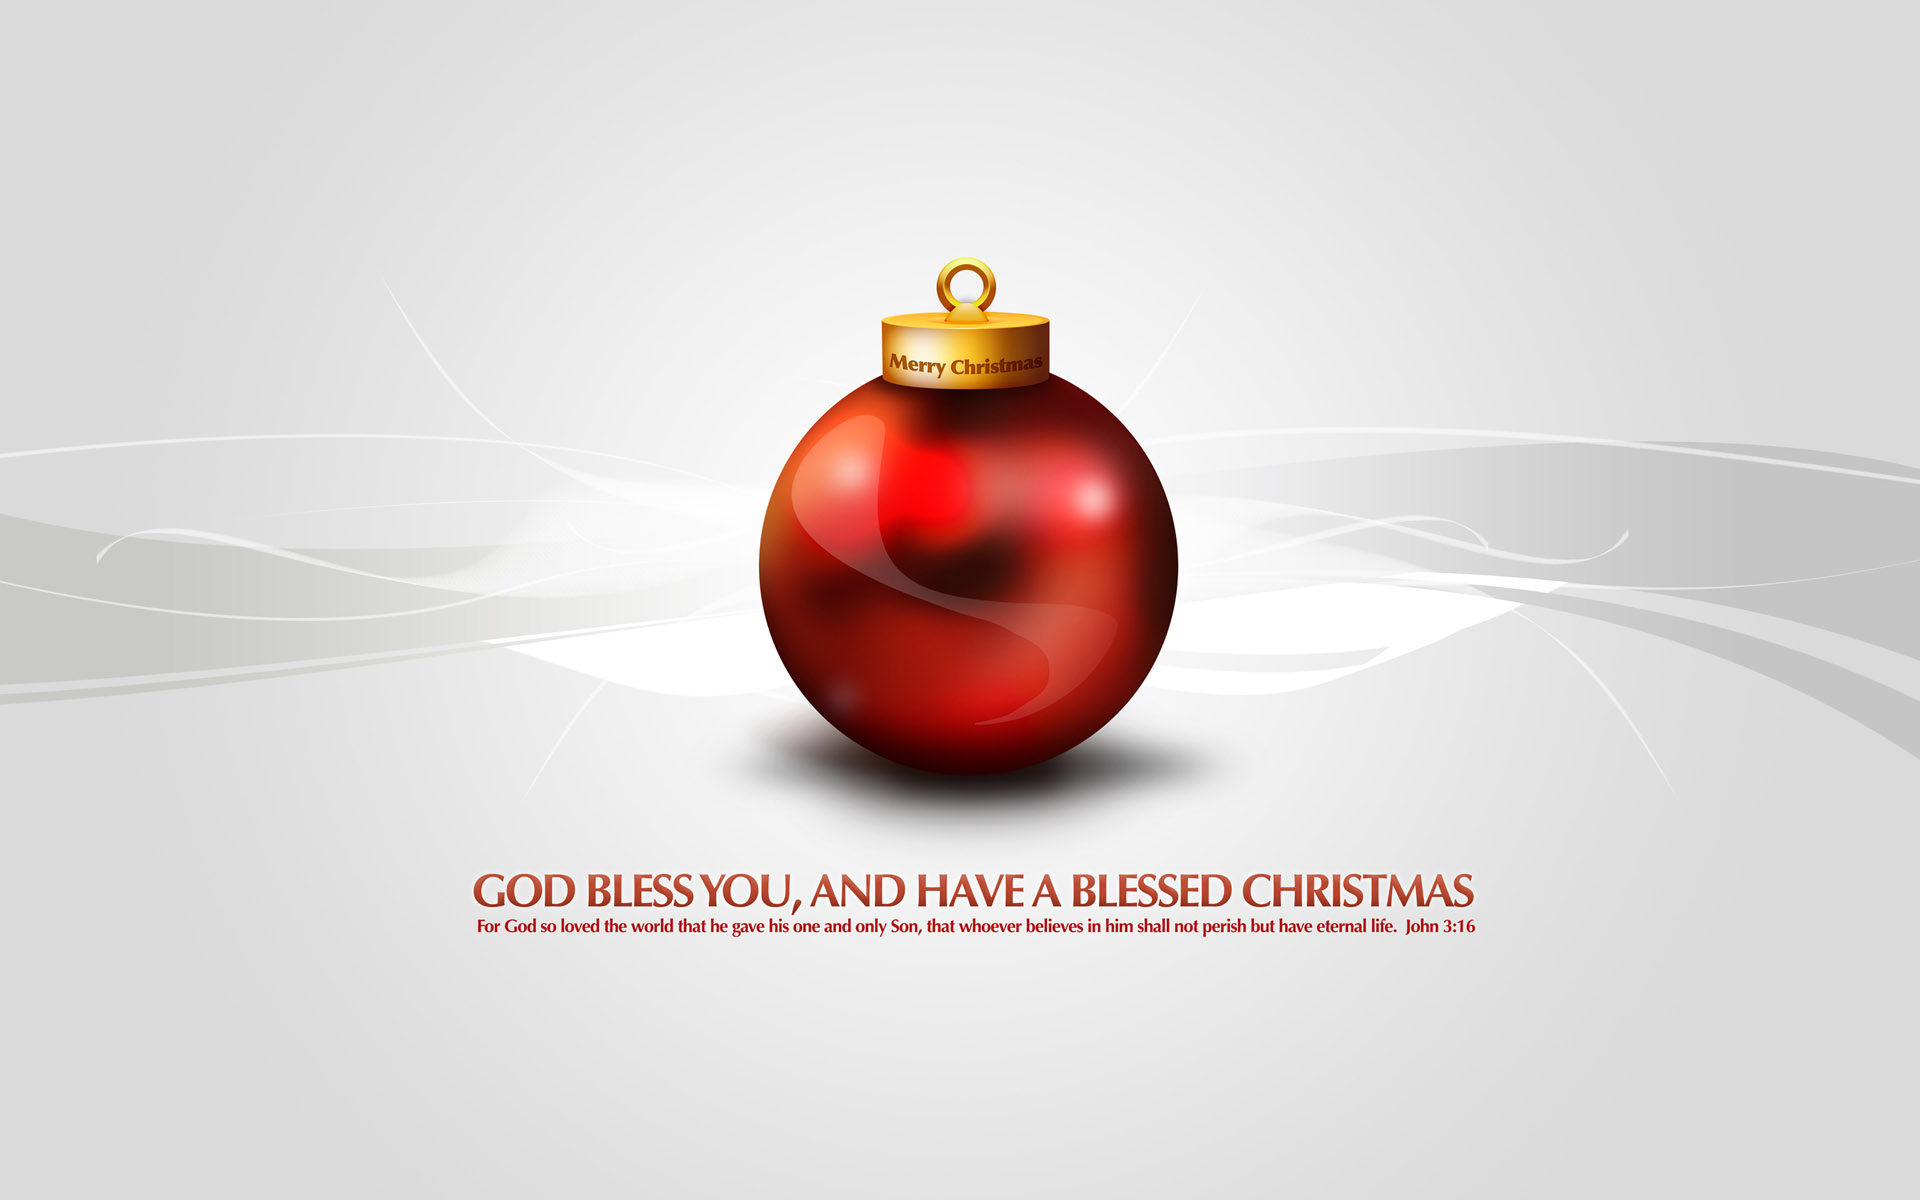 Merry Christmas God Bless You 197.94 Kb